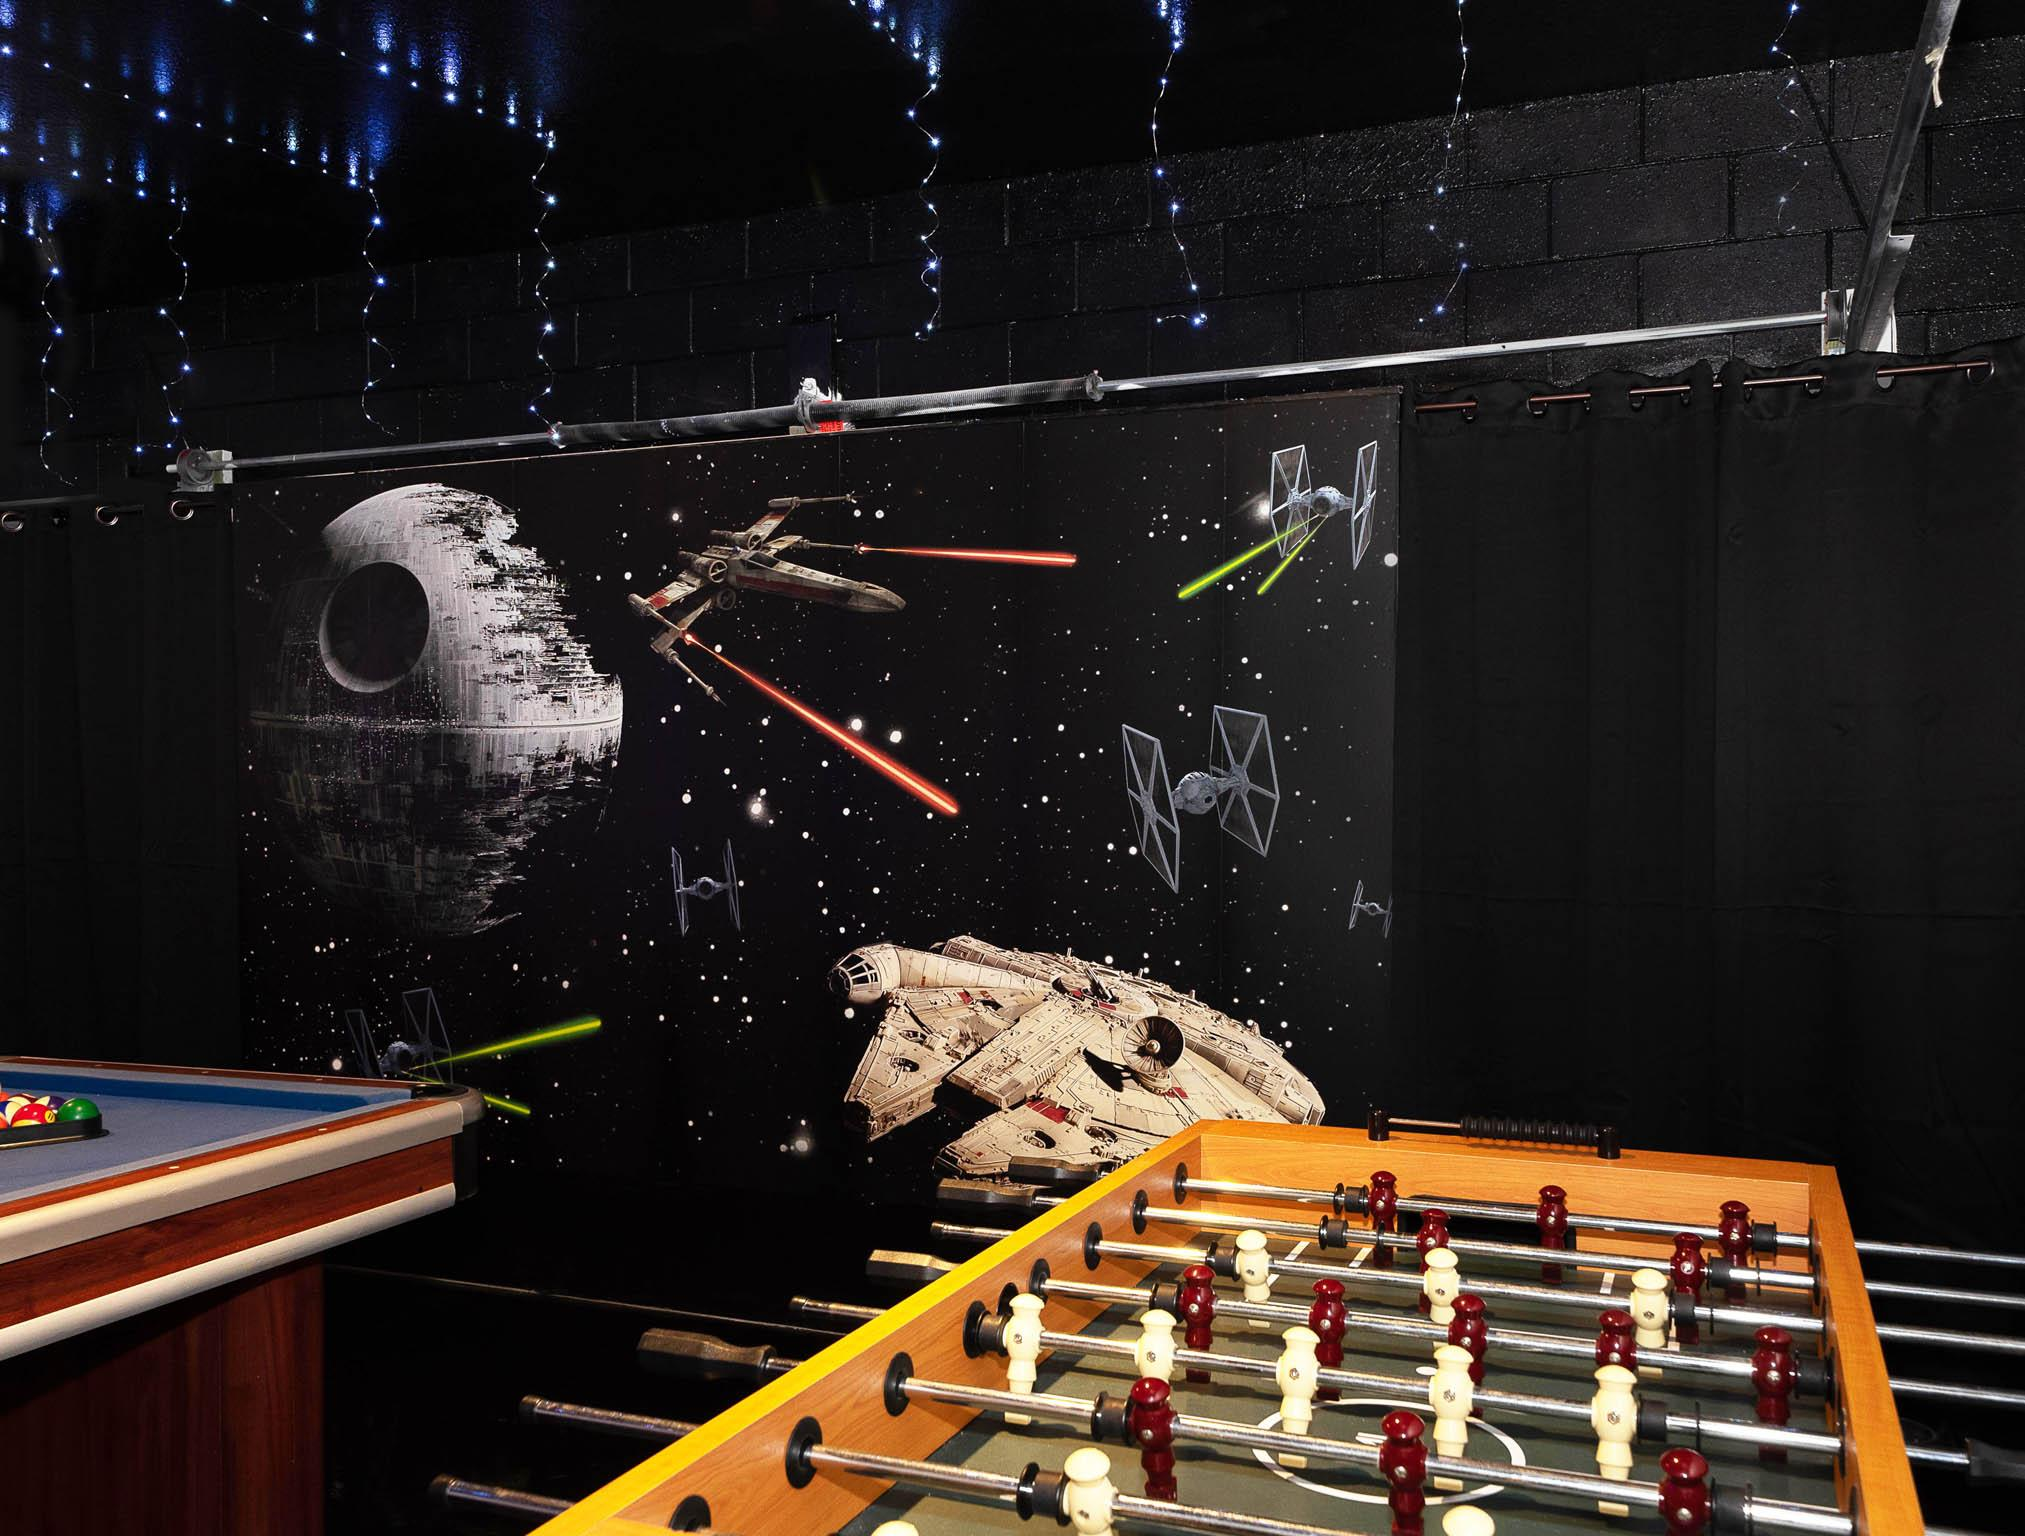 Urge to play?  May the Force be with you.